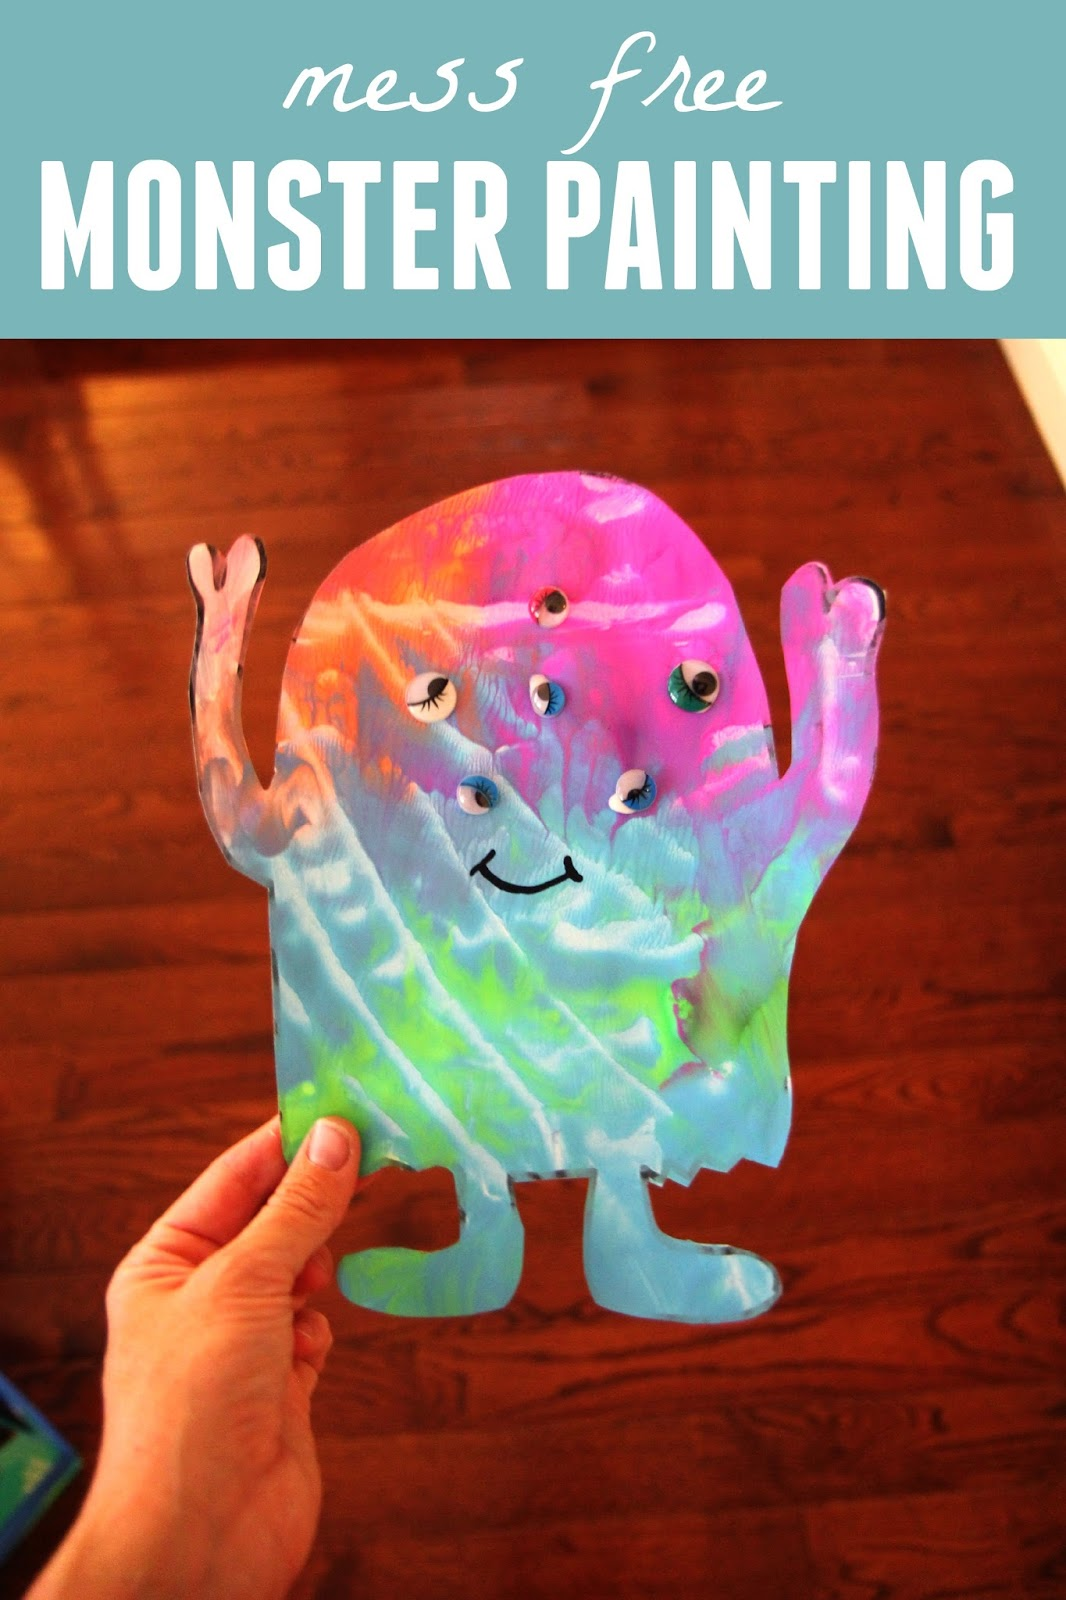 Toddler Approved!: Mess Free Monster Painting